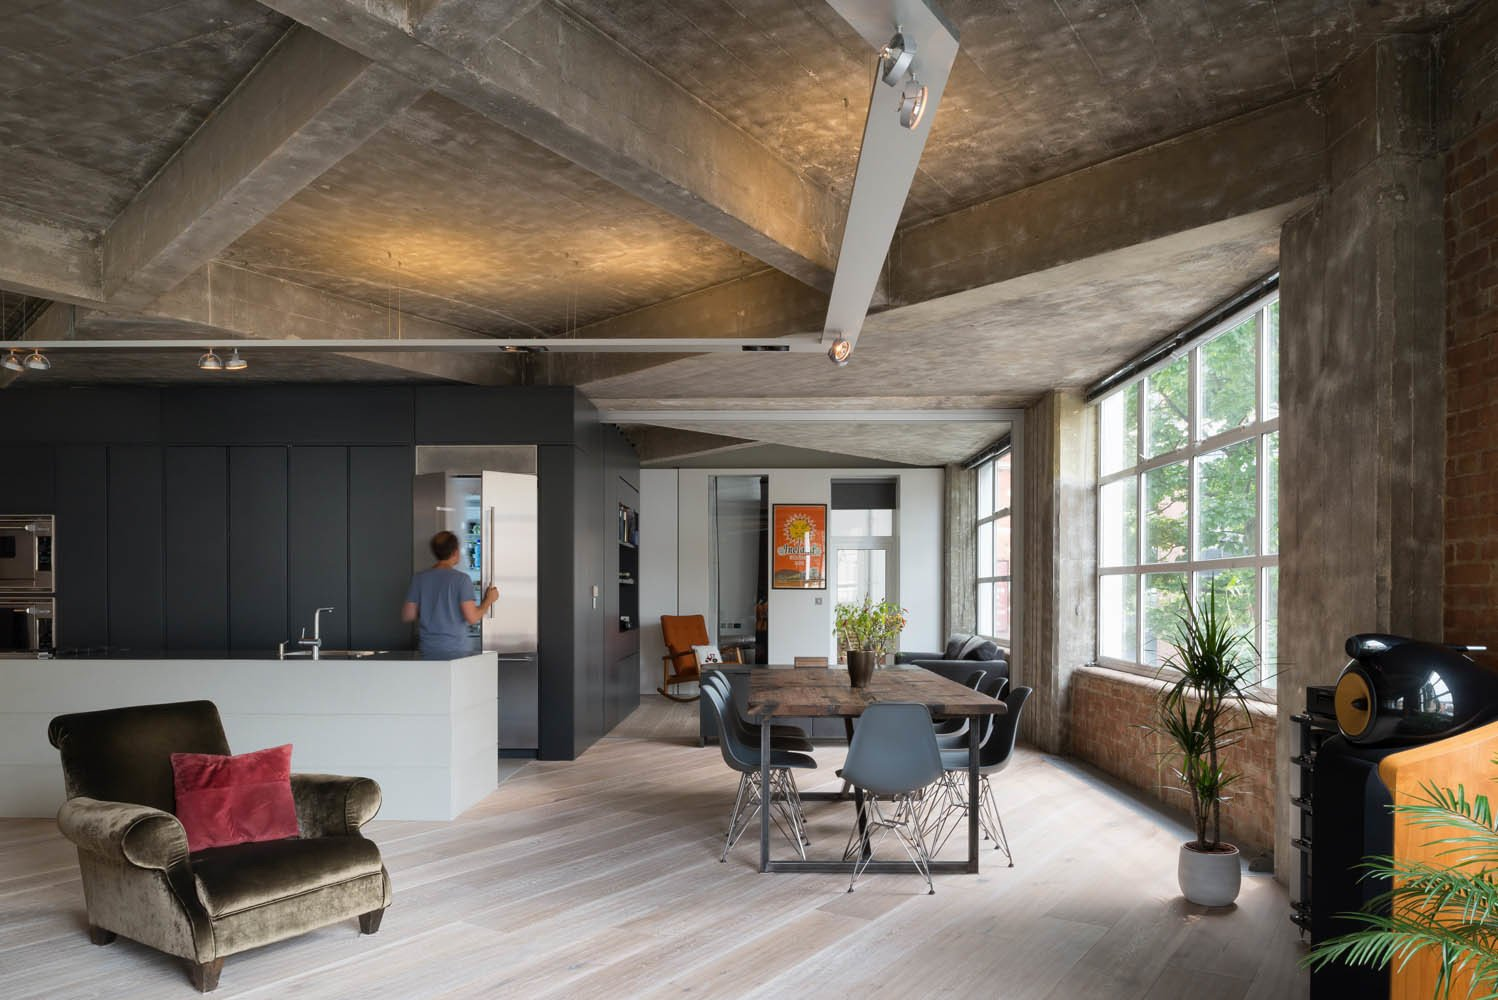 The renovation was designed to preserve and call attention to the angular pattern of the crisscrossing concrete ceiling beams. Photo by Jim Stephenson. Tagged: Living Room, Light Hardwood Floor, and Chair.  Photo 2 of 8 in Renovation Opens Up a London Apartment